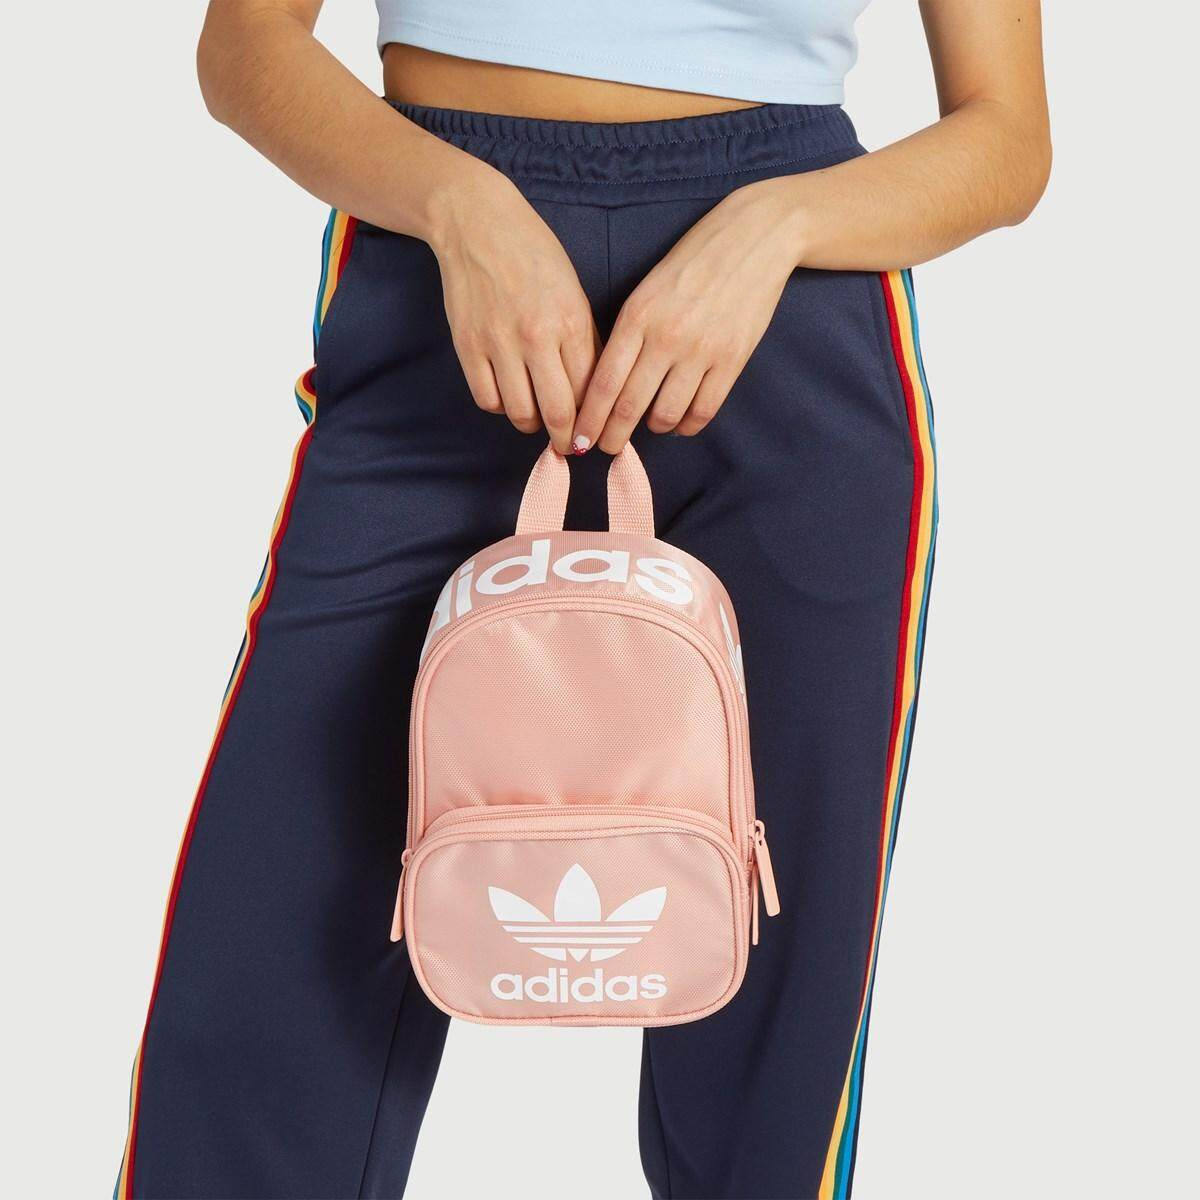 Adidas_Women Santiago Mini Backpack (Black/Pink)